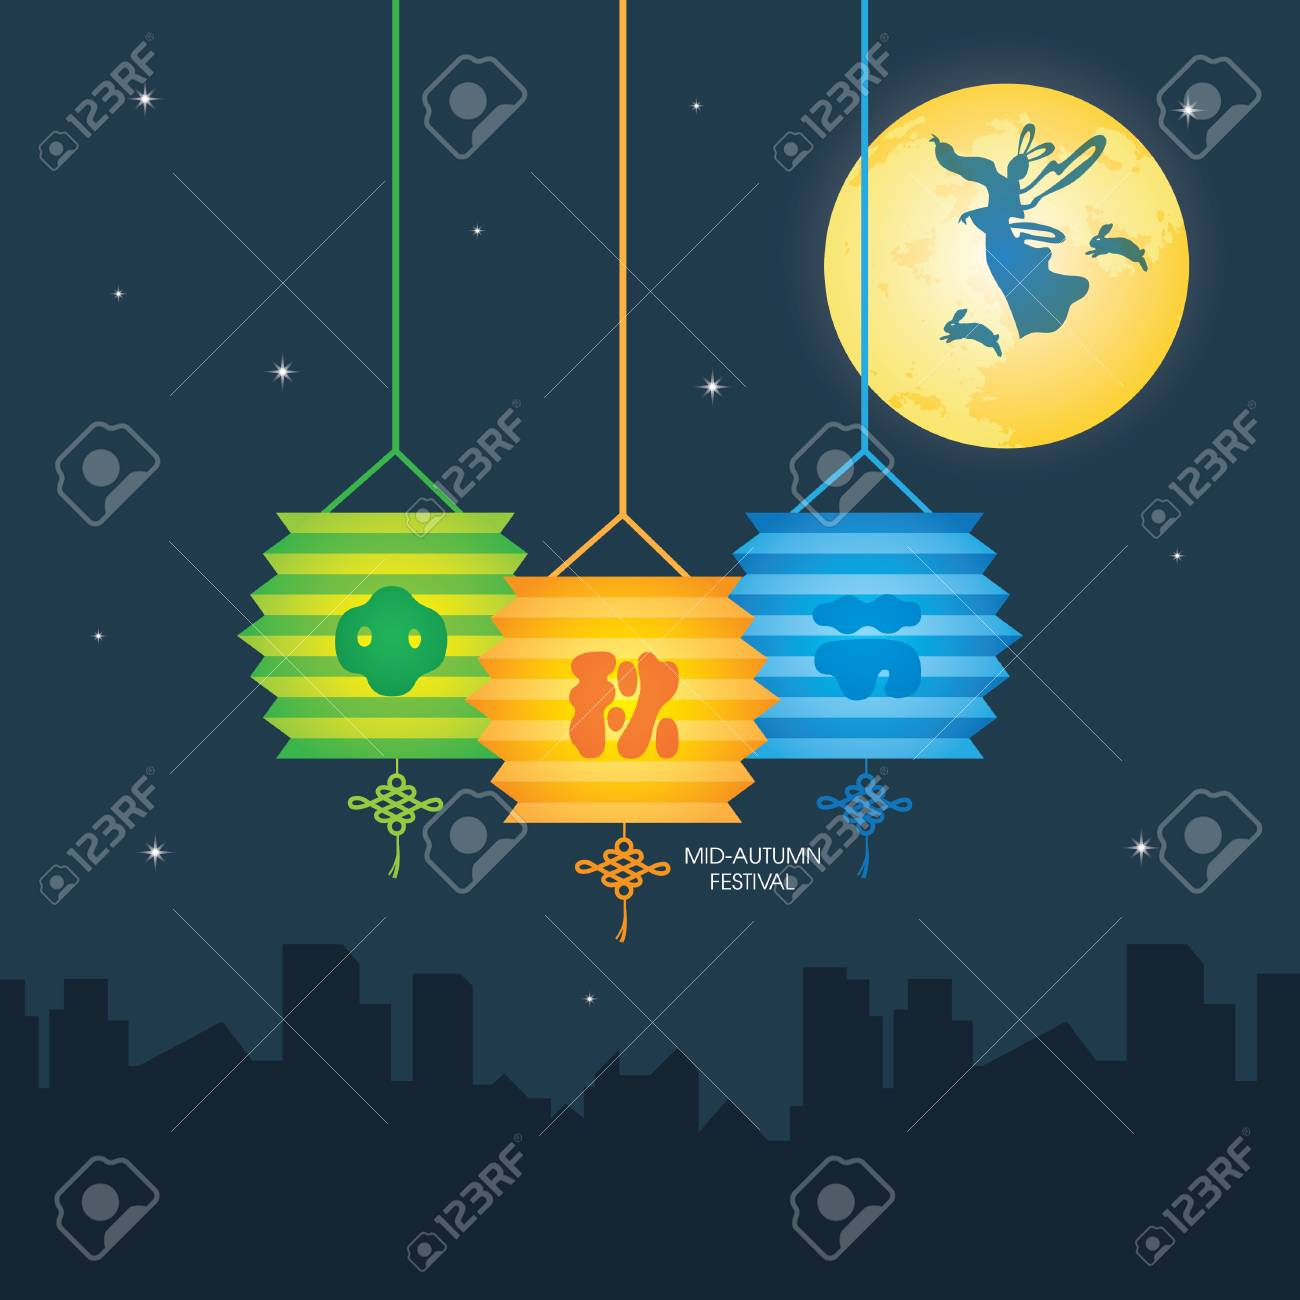 Mid autumn festival illustration of change moon goddess bunny mid autumn festival illustration of change moon goddess bunny pooptronica Choice Image